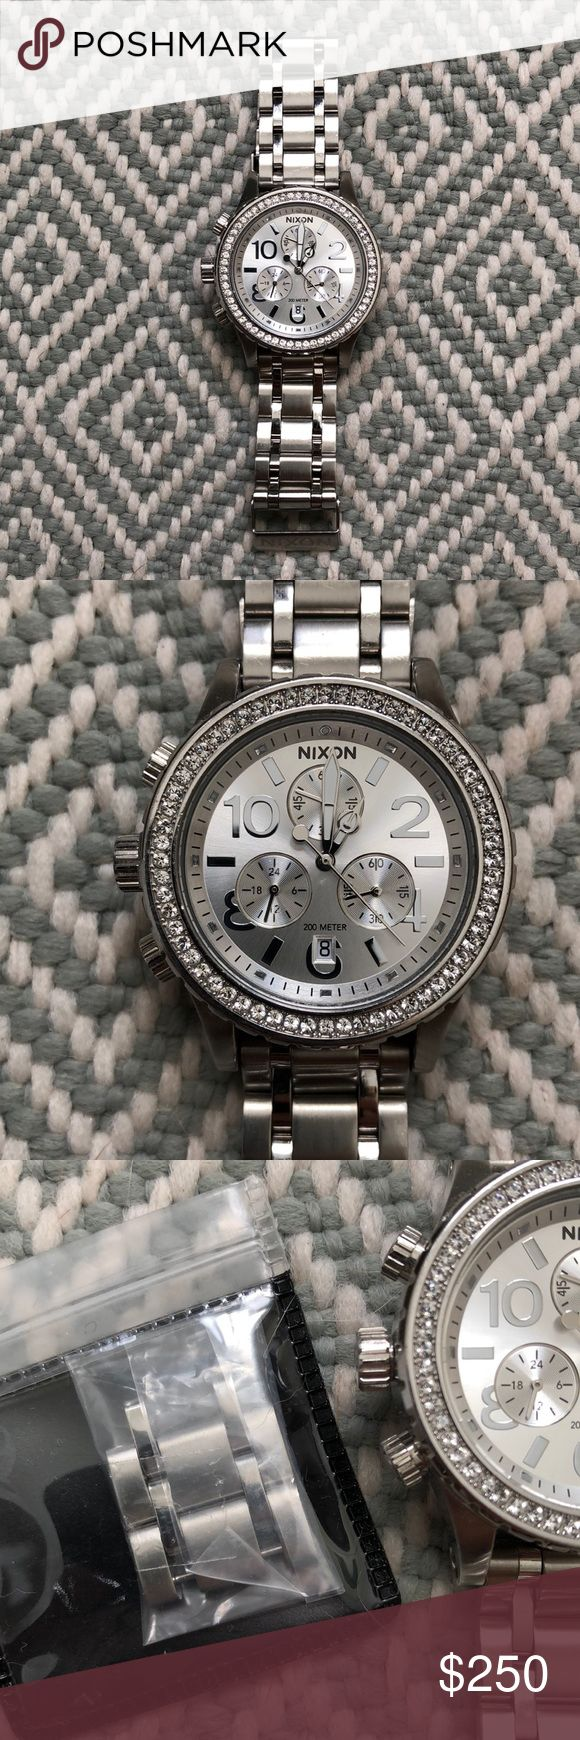 Nixon Women's Watch 38 - 20 CHRONO 38 mm ALL SILVER CRYSTAL Women's Nixon Watch  Worn only a few times.  Original packaging. Comes with all extra links and operations manual Nixon Accessories Watches